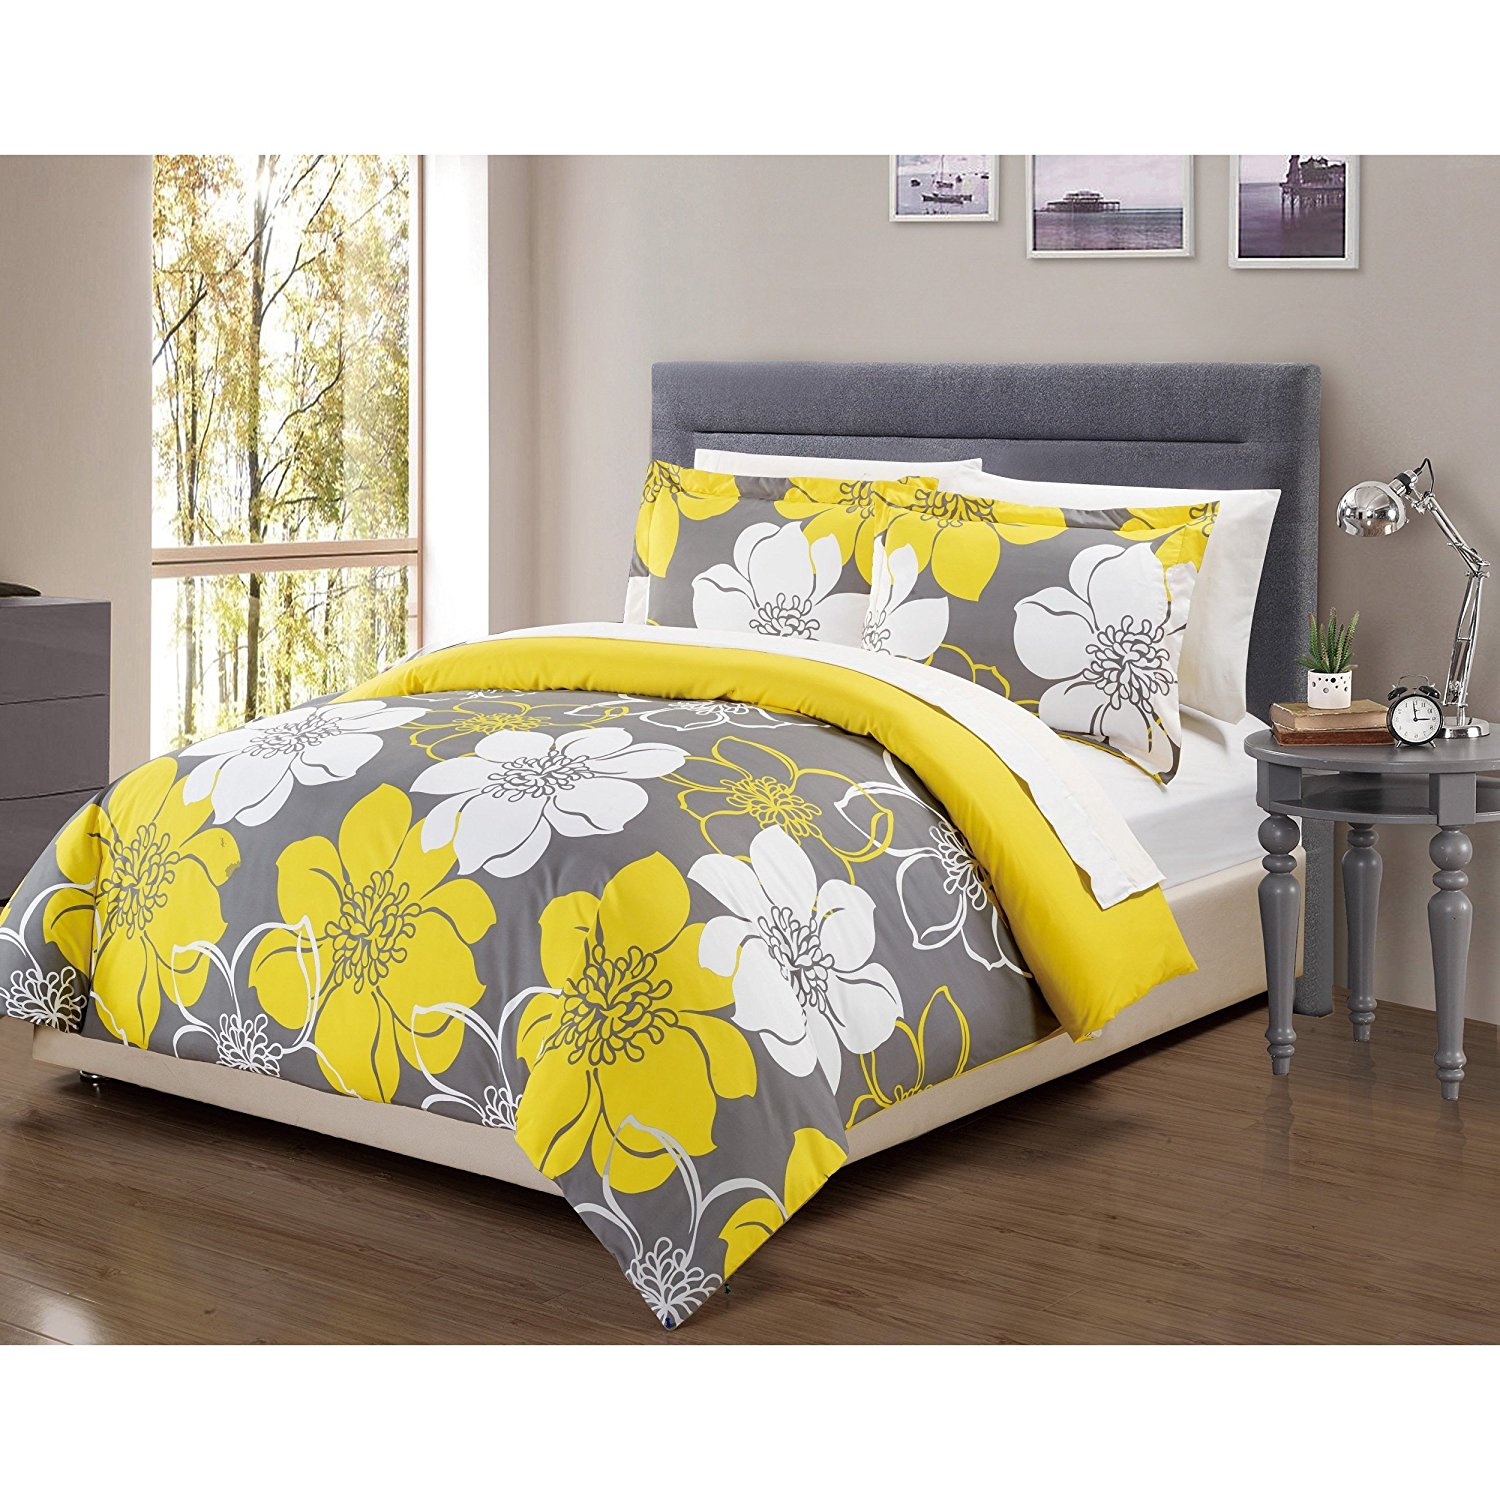 Buy 2 piece girls yellow white grey black floral theme duvet cover 2 piece girls yellow white grey black floral theme duvet cover twin set pretty chic mightylinksfo